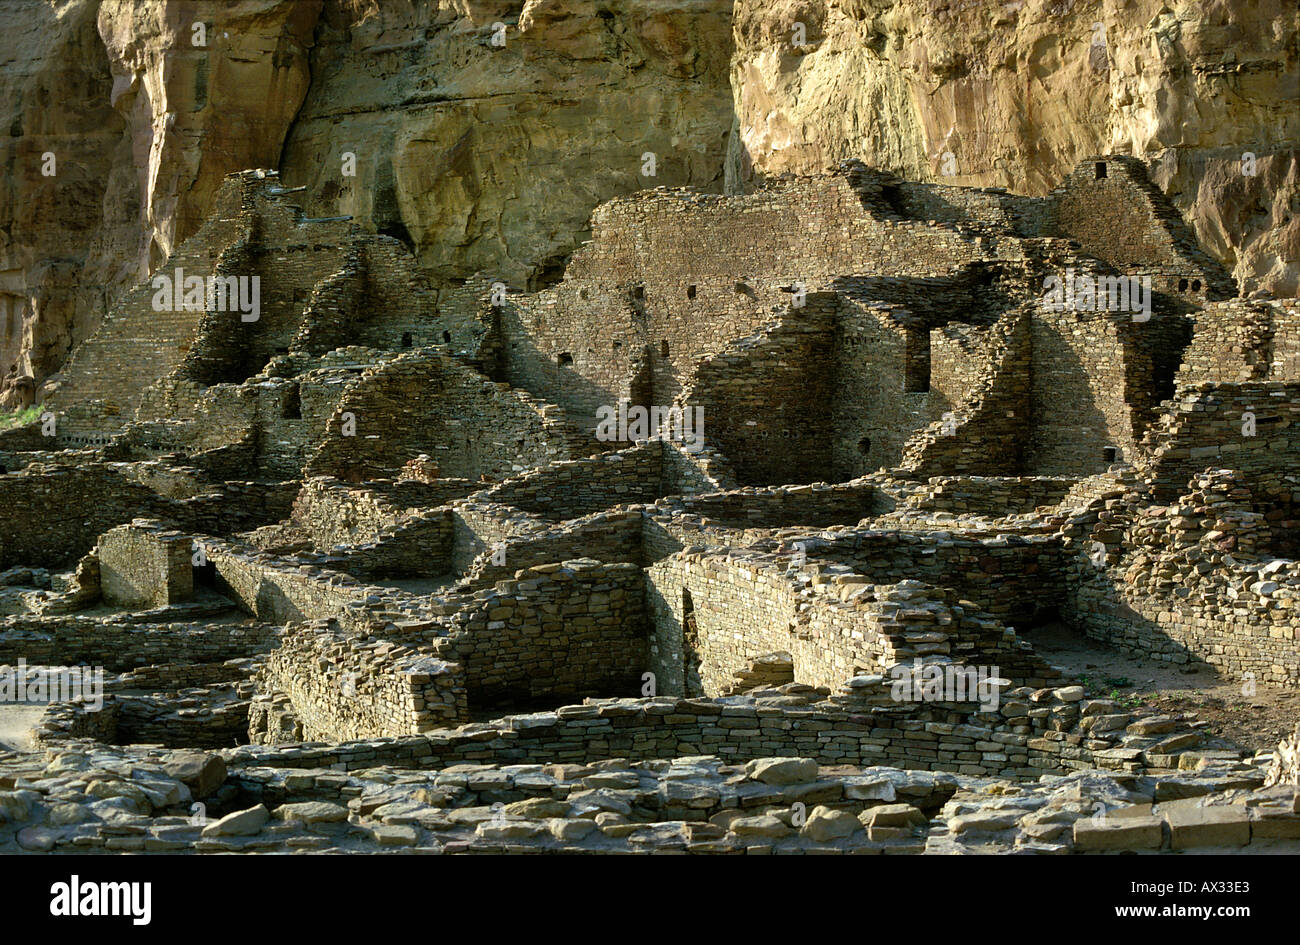 Anasazi Indian Ruins Pueblo Bonito Chaco Canyon National Historical Park New Mexico - Stock Image